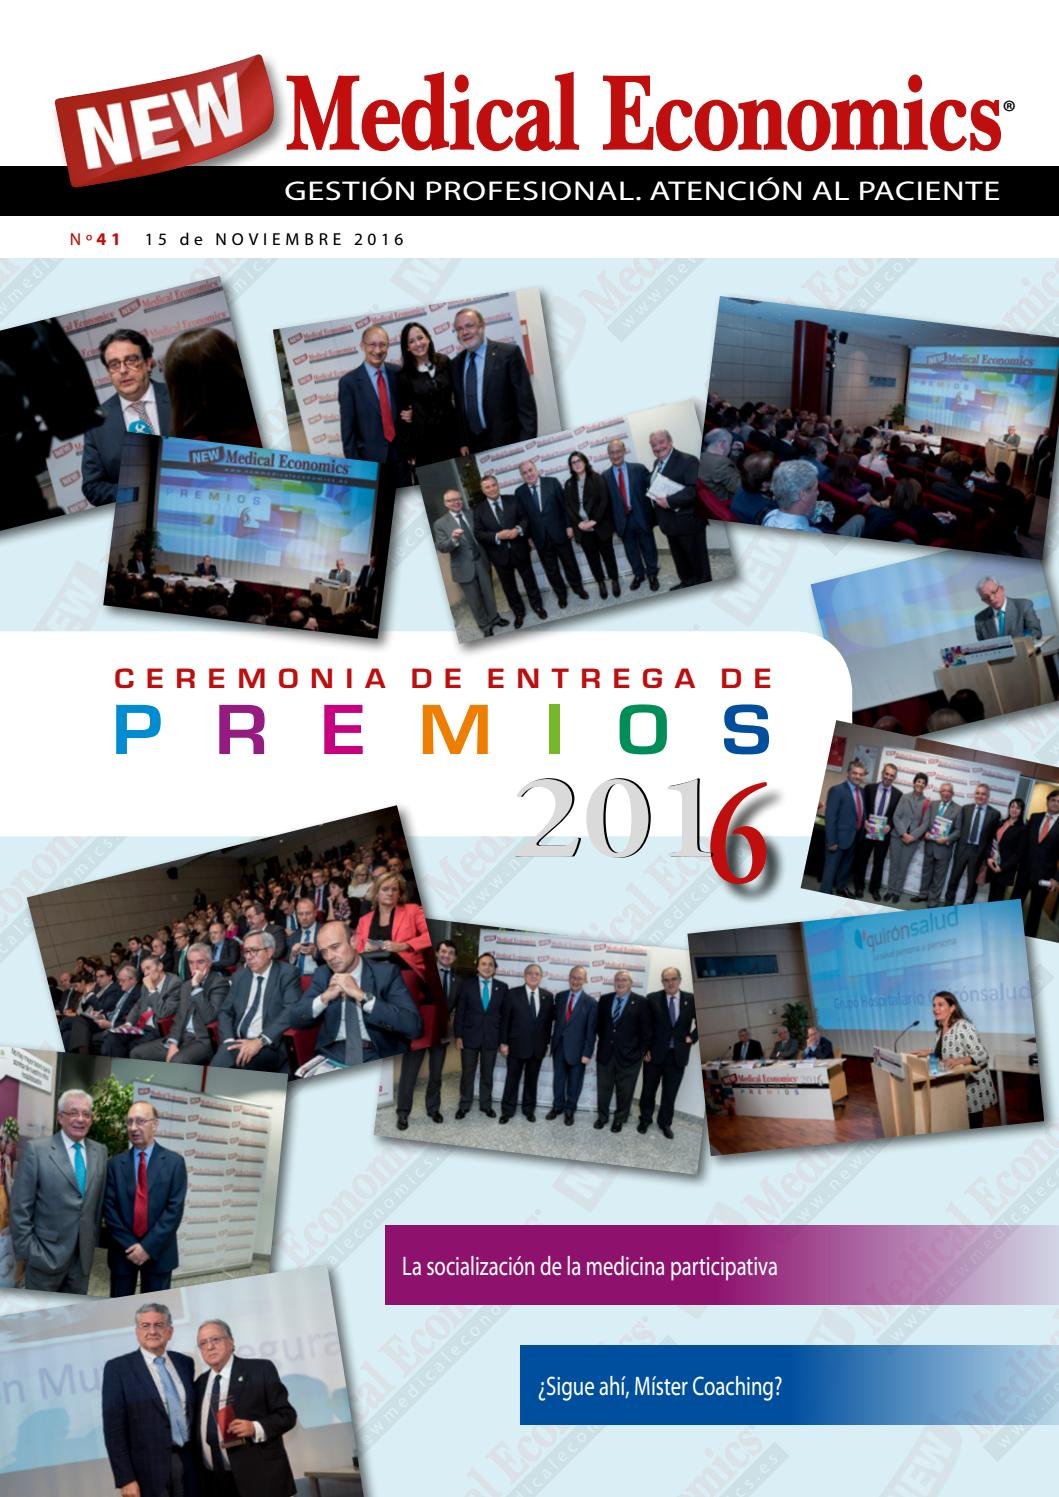 Nº 41 - New Medical Economics by Raíz - issuu